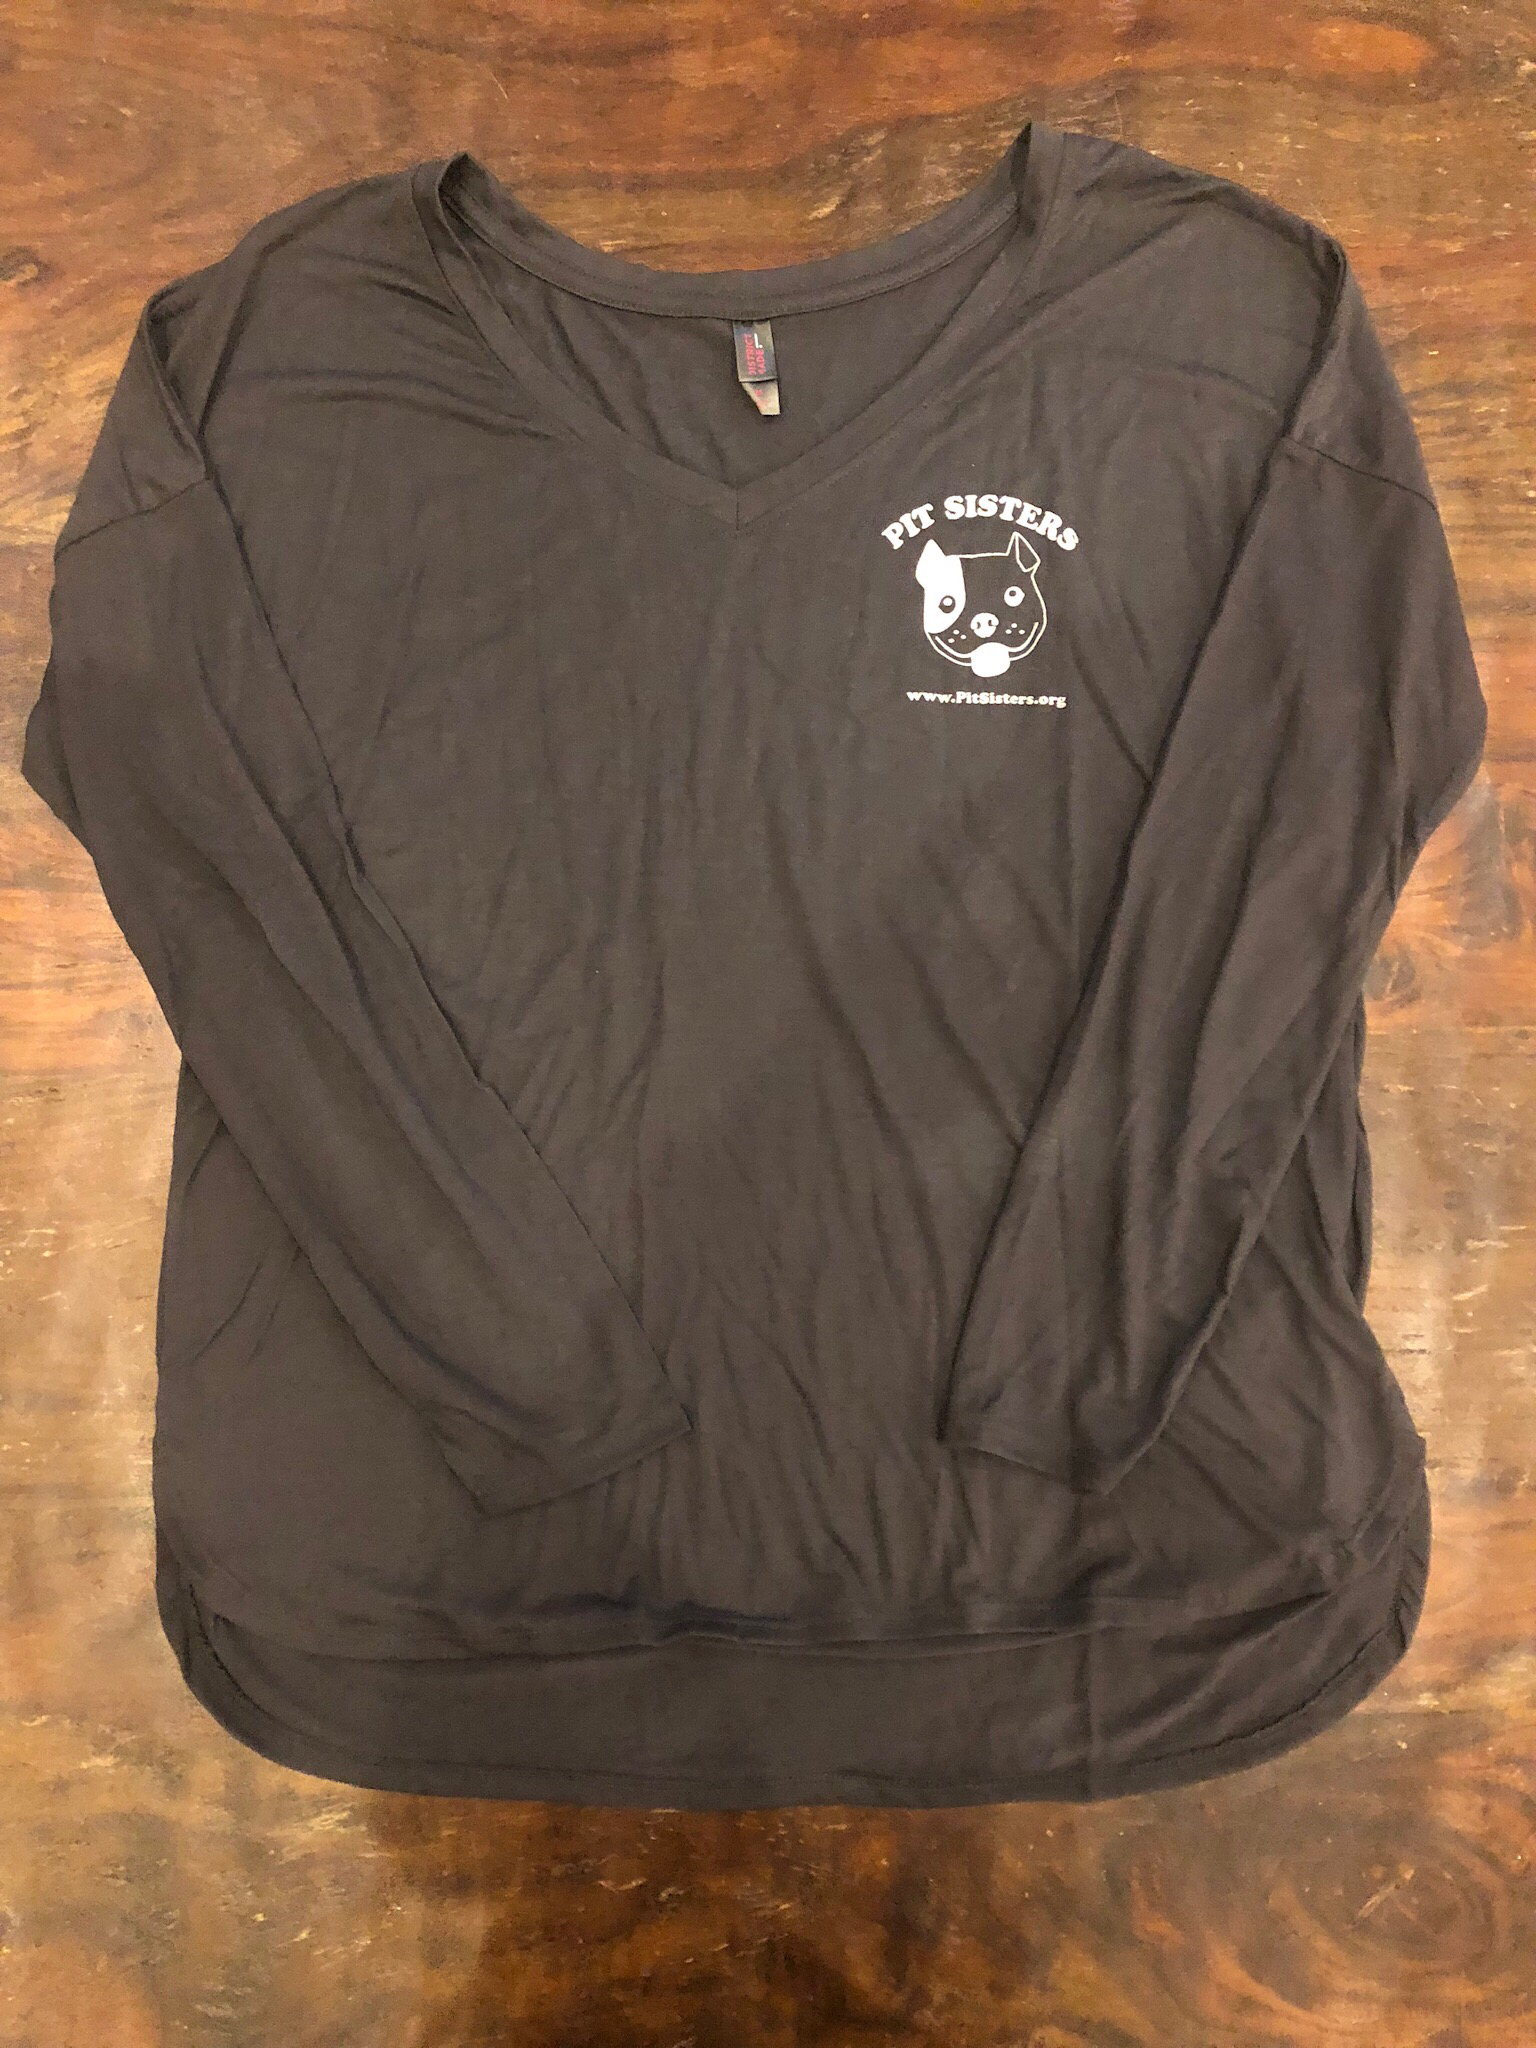 Gray long sleeved VNeck with Pit Sisters logo- Medium 55695